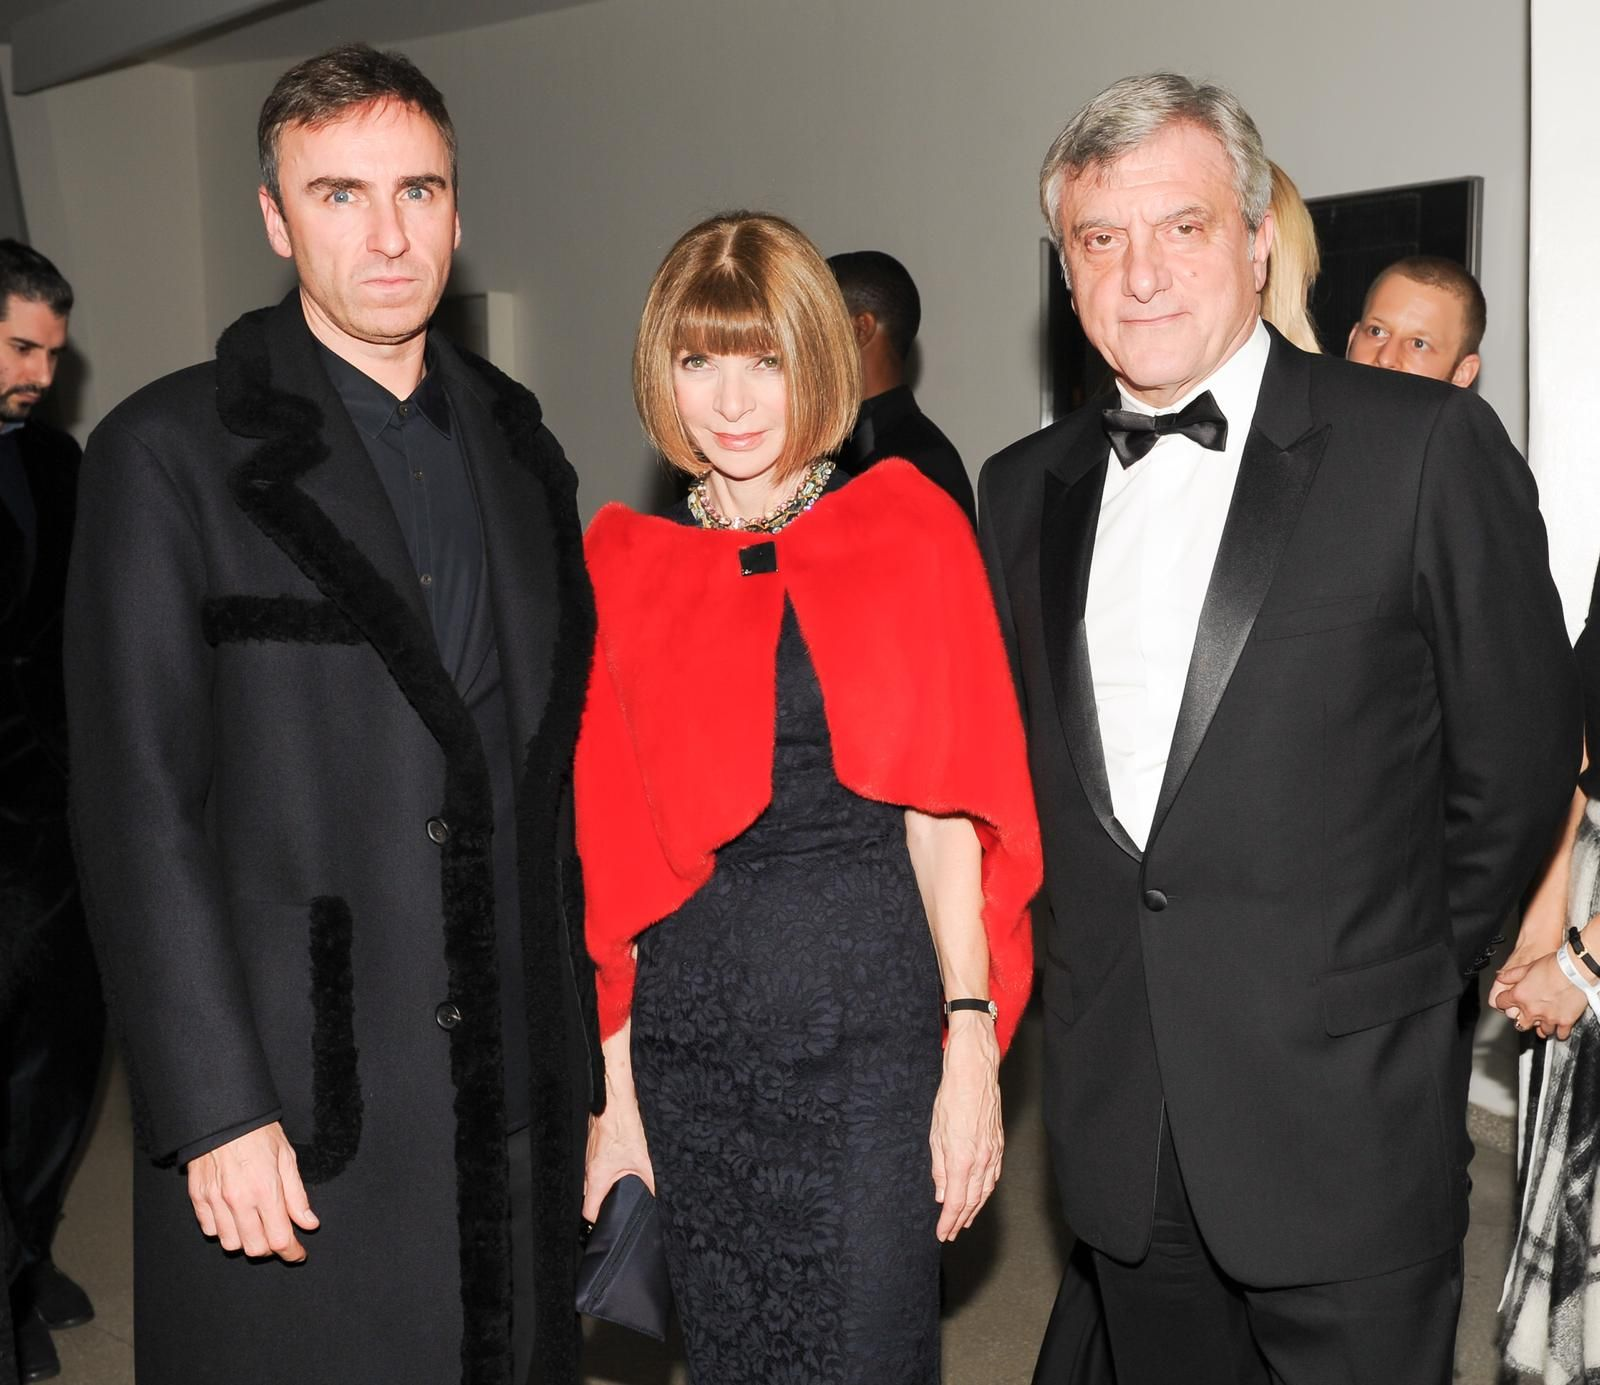 Guggenheim: Raf Simons, Anna Wintour and Sidney Toledano at the gala dinner